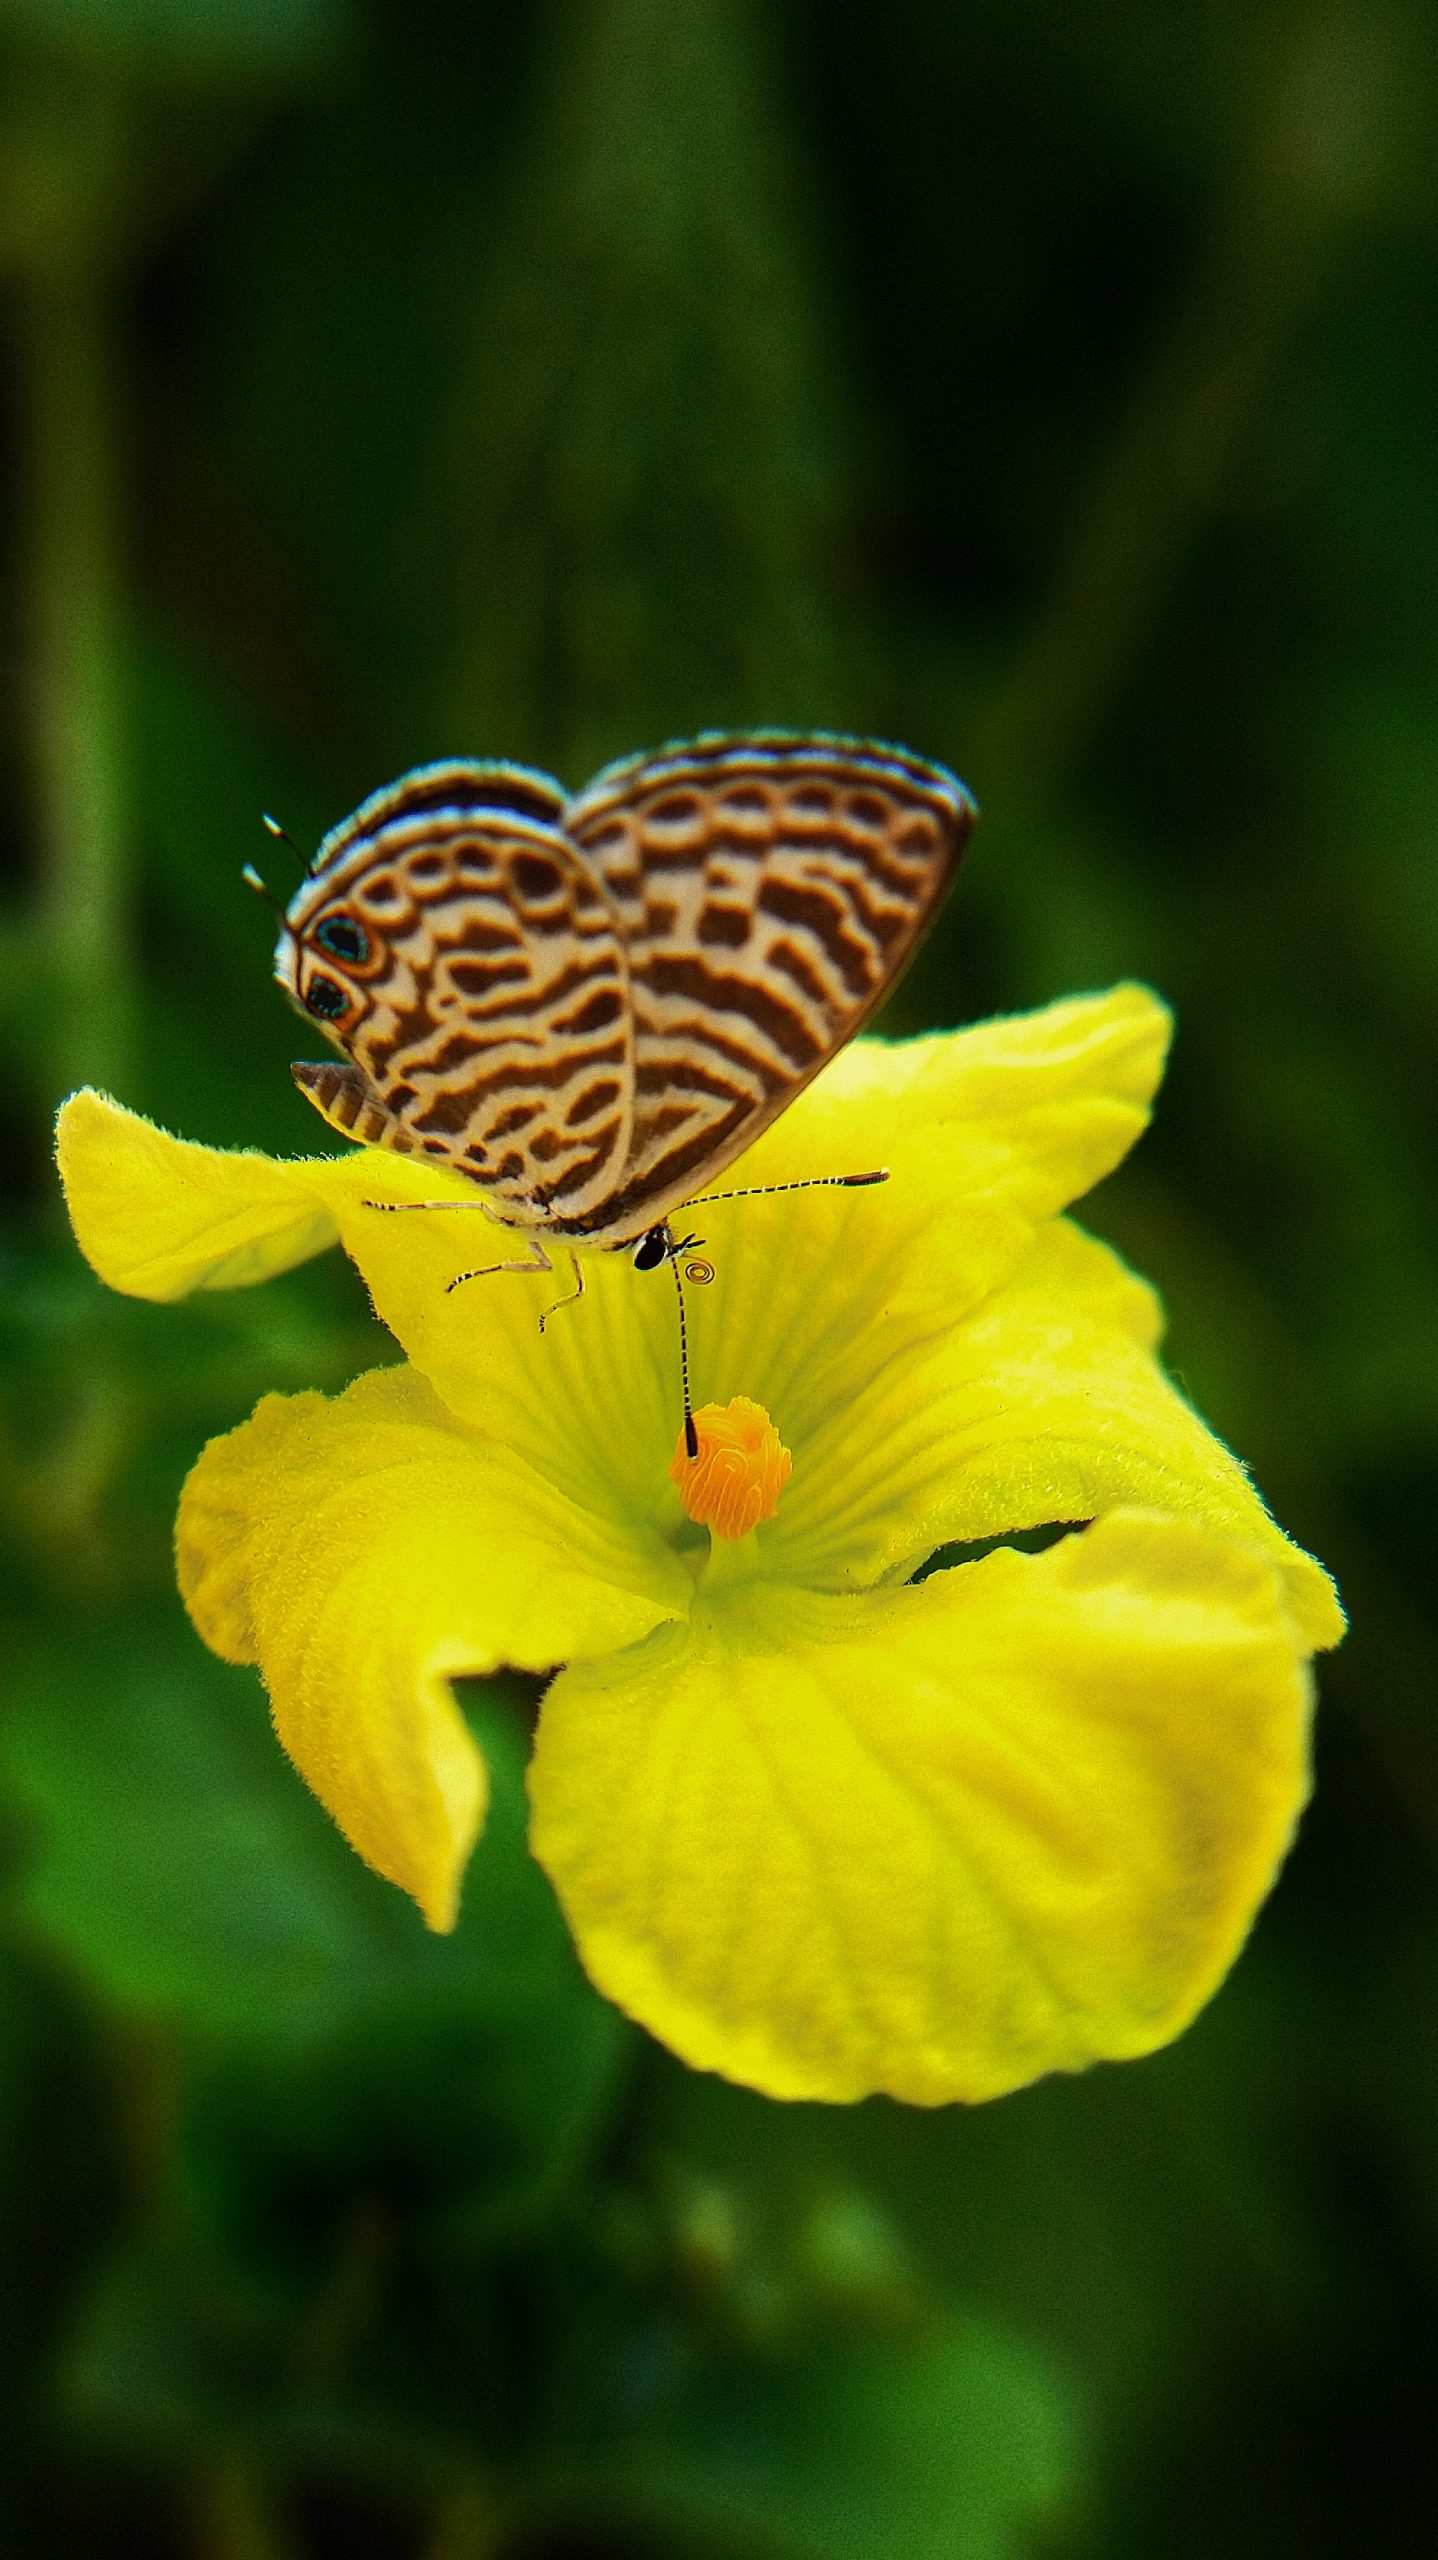 Butterfly hovering over a flower